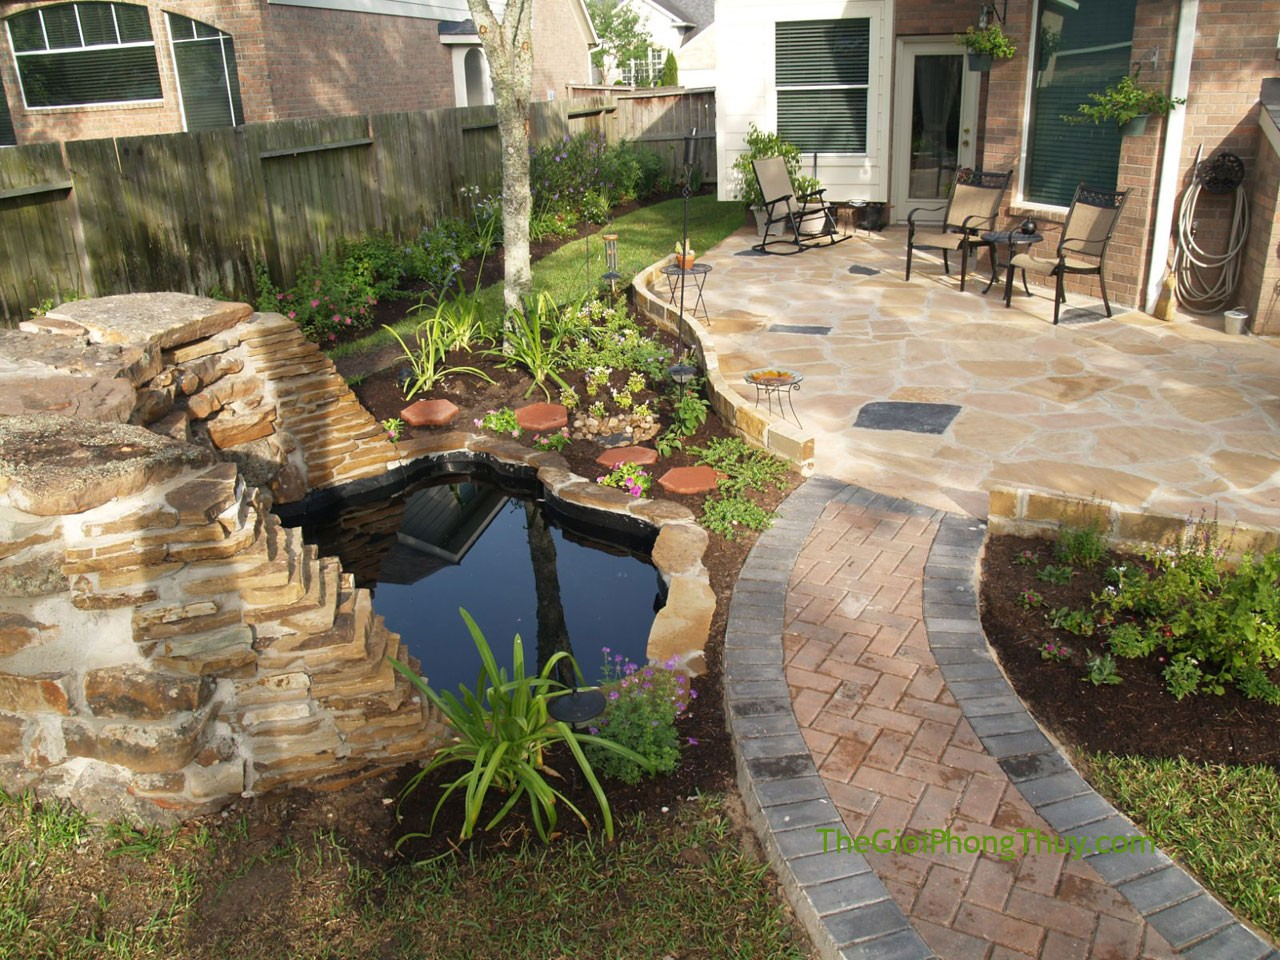 Small-Backyard-Landscaping-Decorated-with-Natural-Small-Pond-Completed-with-Rock-Decoration-and-Small-Pathway-Ideas